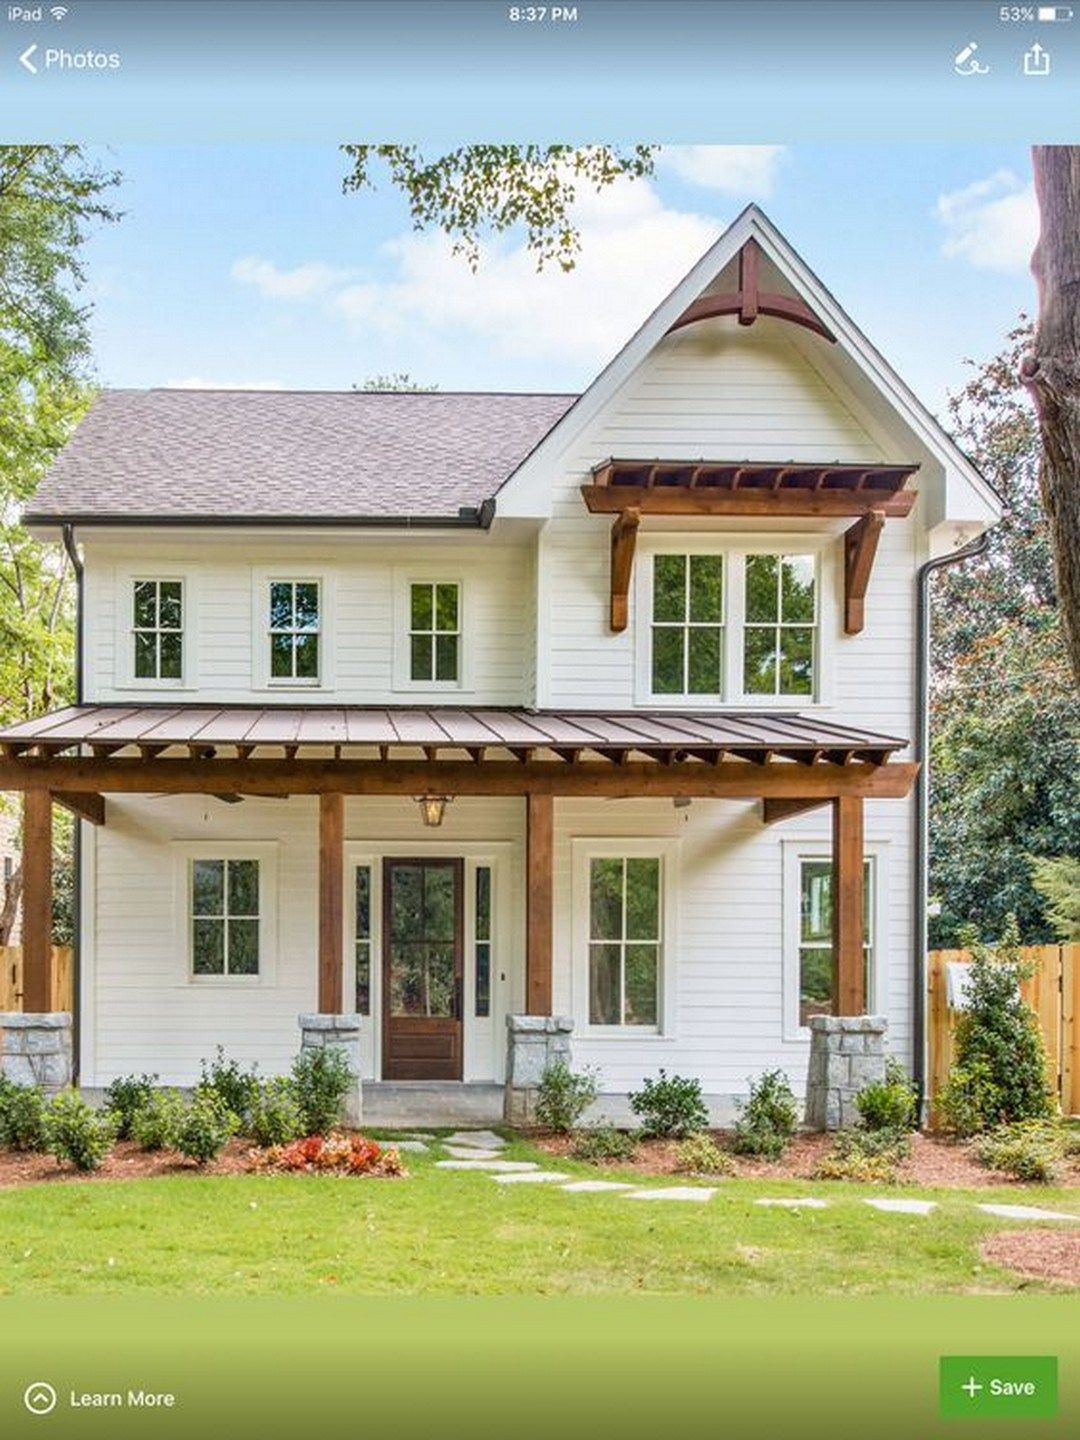 ea6d0f6f2fdca3d7dc93563d82af8968 Old House Exterior Design Ideas on outdoor design ideas, hood design ideas, house restaurant ideas, house exterior construction, house with exterior stone veneer, house beautiful home, plumbing design ideas, house exterior furniture, travel design ideas, crafts design ideas, history design ideas, house with stone exterior siding, house floor plan names, stone design ideas, haircuts design ideas, house exterior remodeling before and after, house exterior eagle, sheds design ideas, interior design ideas, house exterior decorating,